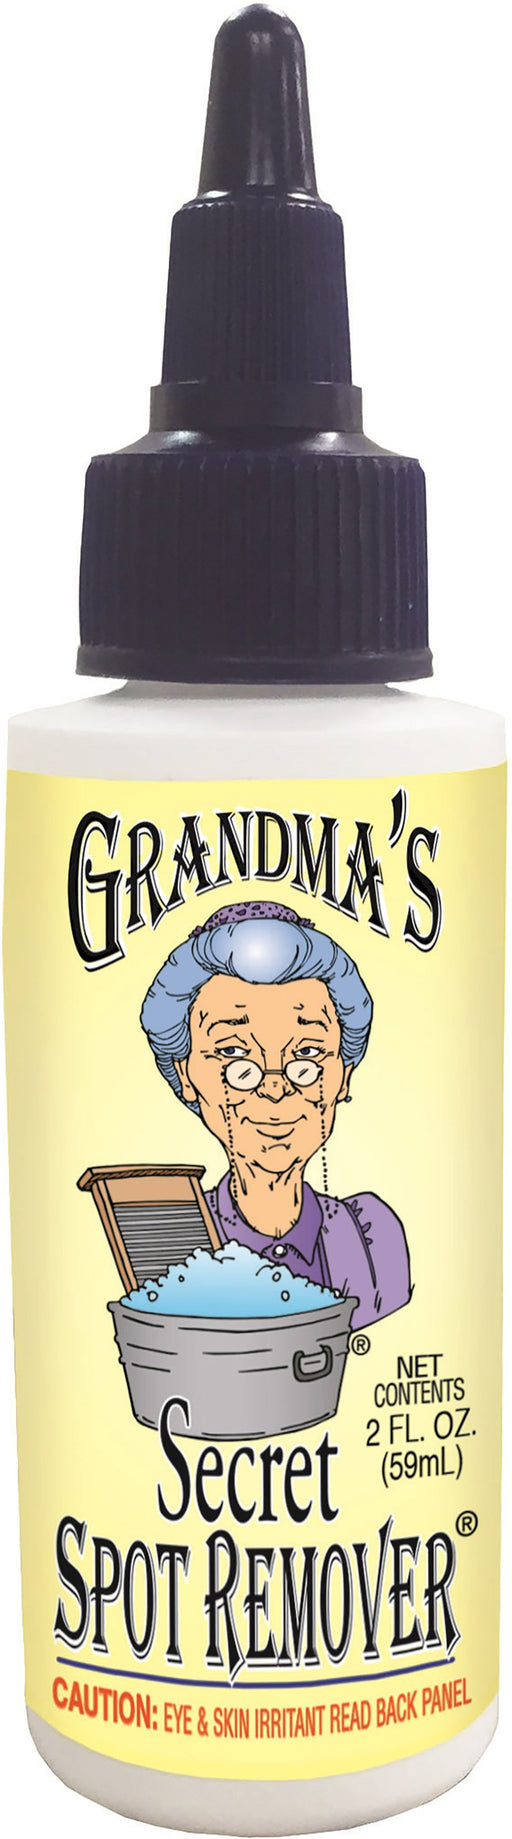 Grandma's Secret Spot Remover Blister Card